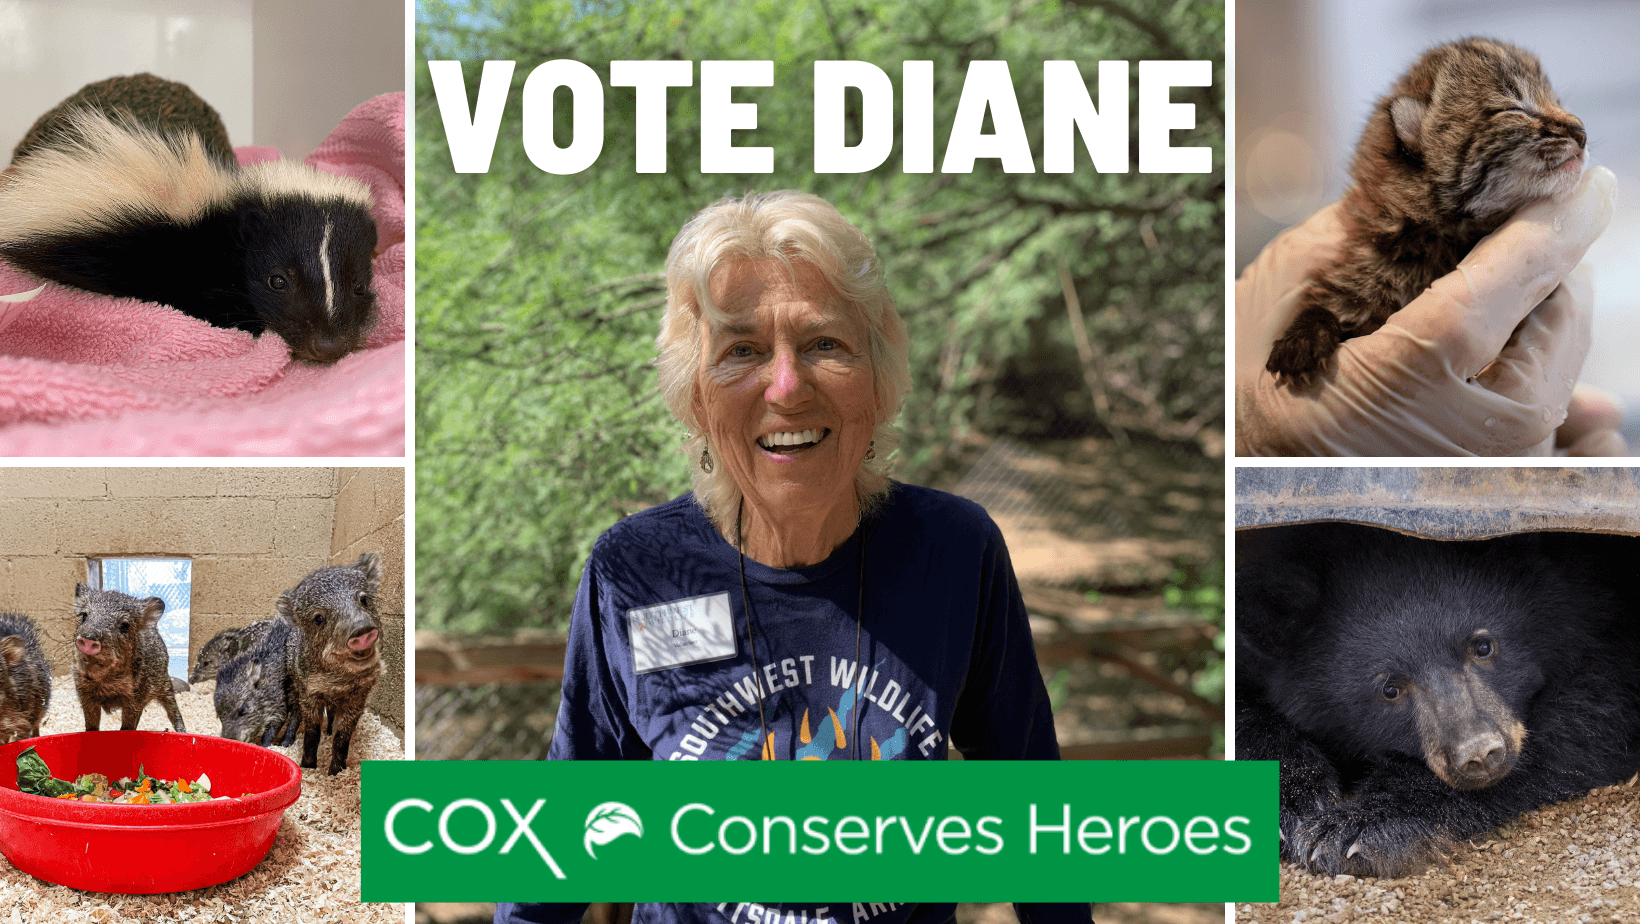 Vote Diane for Cox Conserves Heroes 2021!